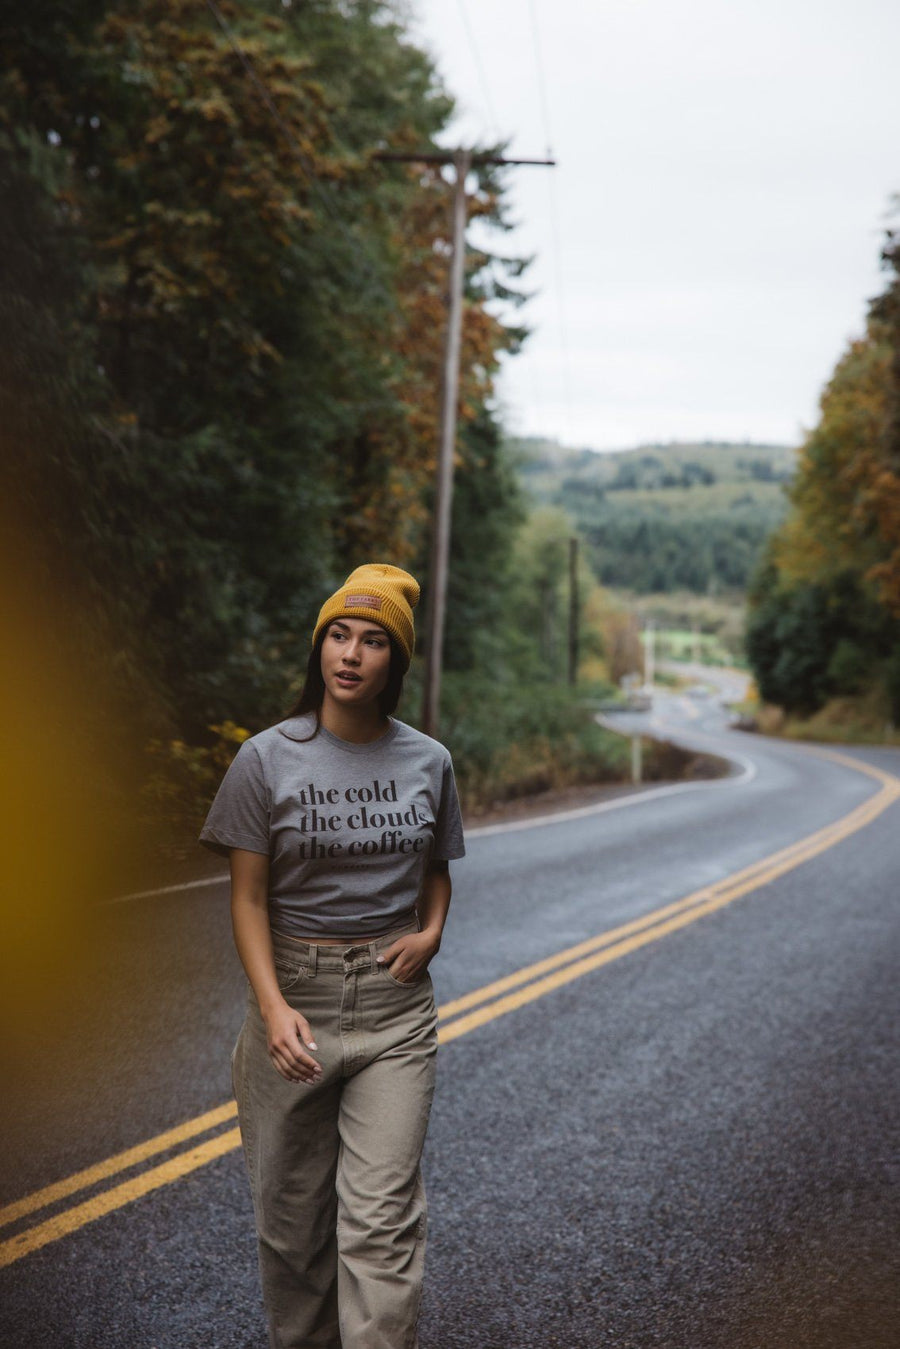 The Cold, The Clouds, The Coffee Tee - Wondery, A Parks Apparel Brand